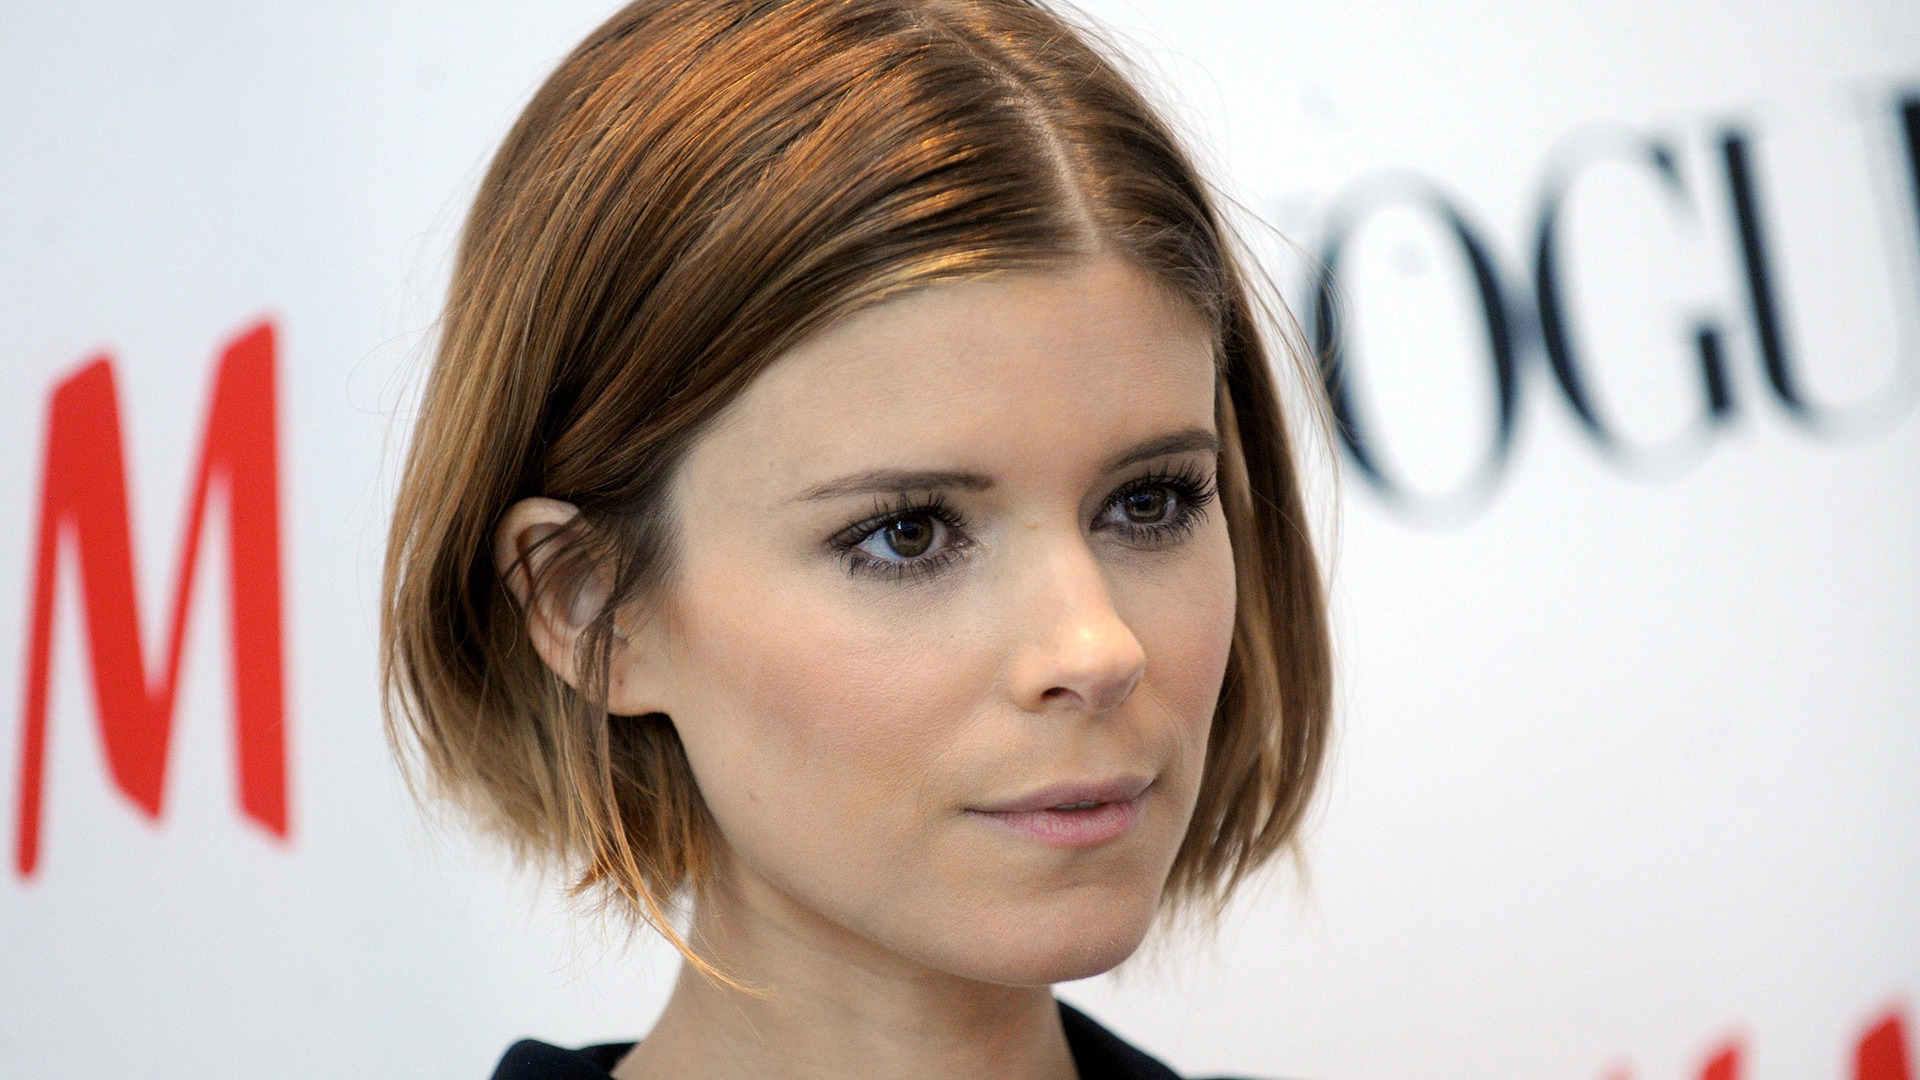 kate mara fan sitekate mara wiki, kate mara фото, kate mara 2017, kate mara 2016, kate mara insta, kate mara фильмы, kate mara imdb, kate mara anton yelchin, kate mara films, kate mara site, kate mara kinopoisk, kate mara facebook, kate mara iron man, kate mara photo hot, kate mara sister, kate mara hq pictures, kate mara fan site, kate mara jamie bell, kate mara max minghella, kate mara chelsea lately